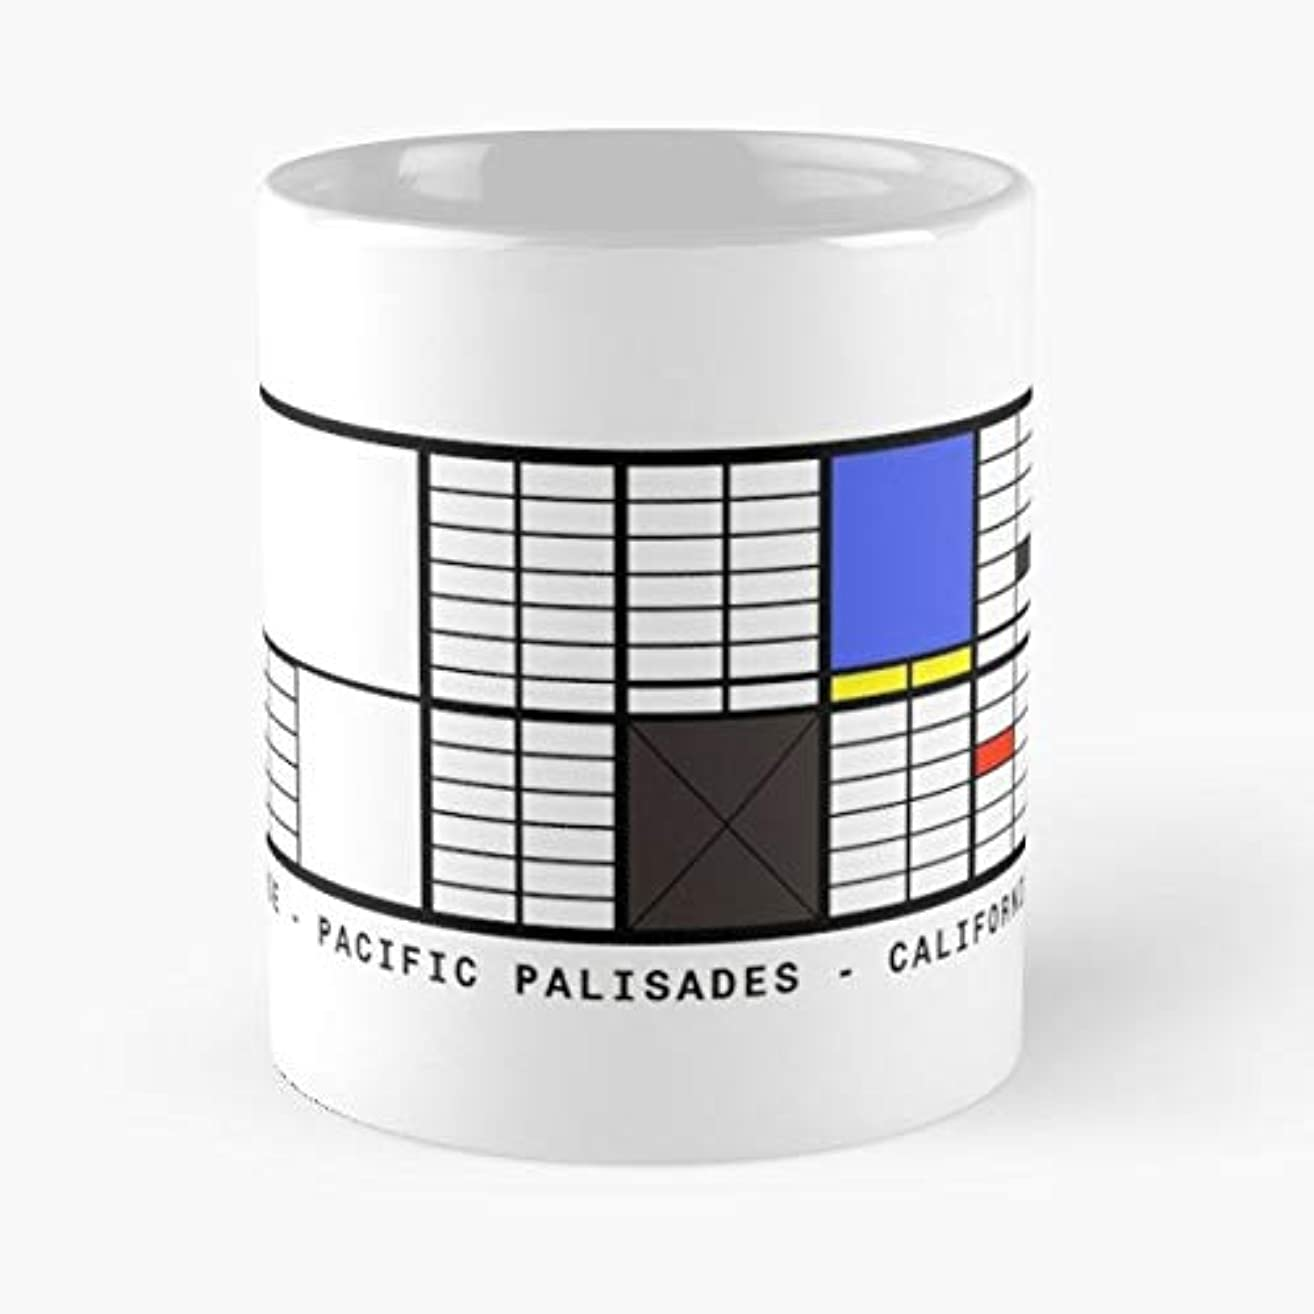 Eames House Architecture California Los Angeles - Ceramic Novelty Mugs 11 Oz, Funny Gift